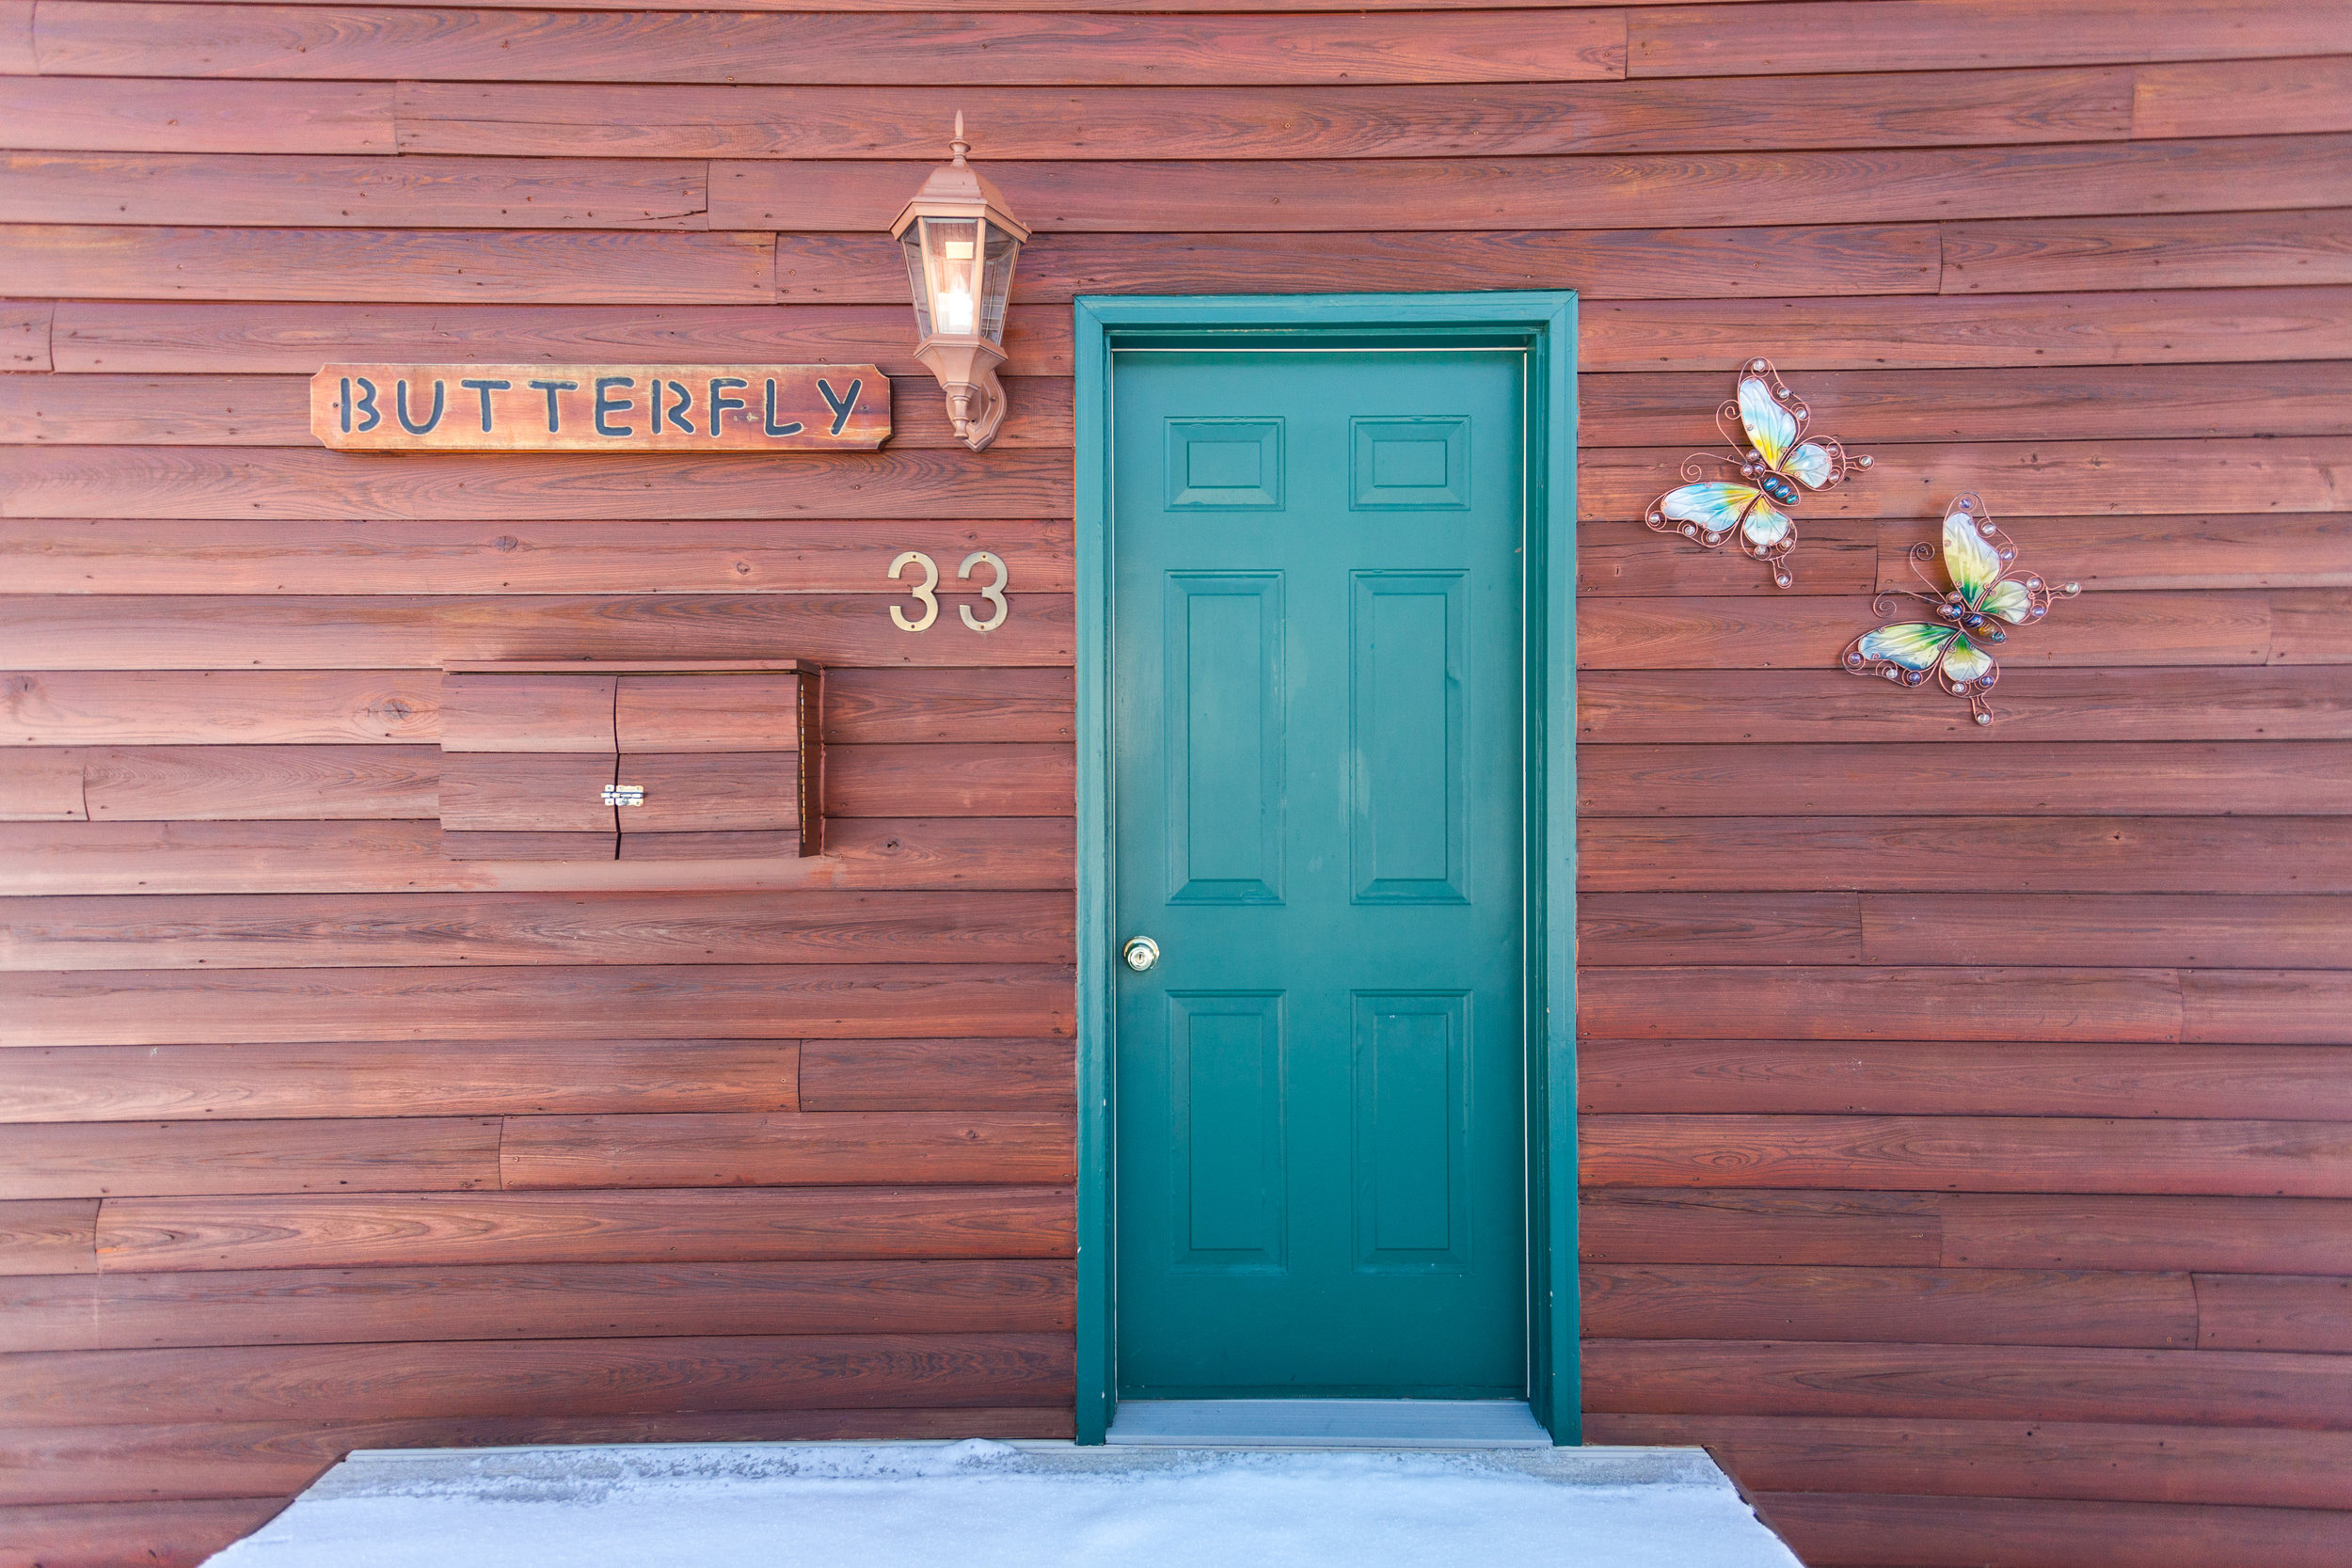 A green door of a cabin with the Name butterfly and Number 33 beside it